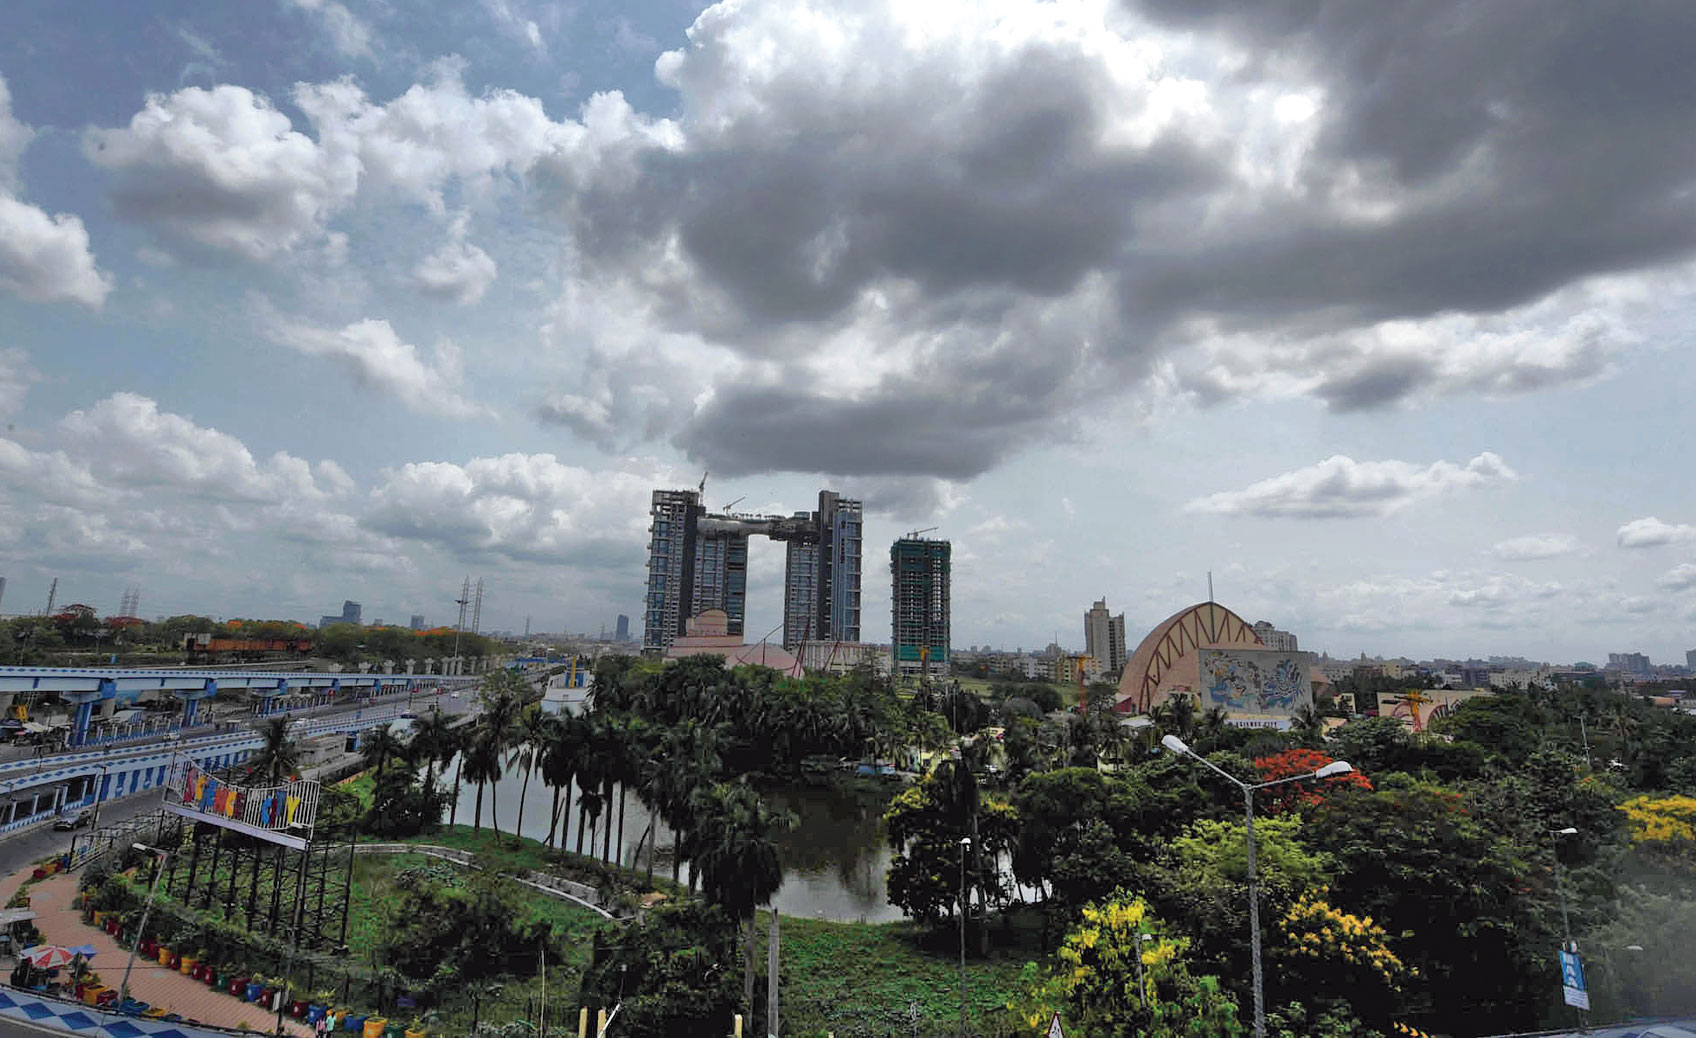 Clouds hover over the city on Wednesday afternoon.